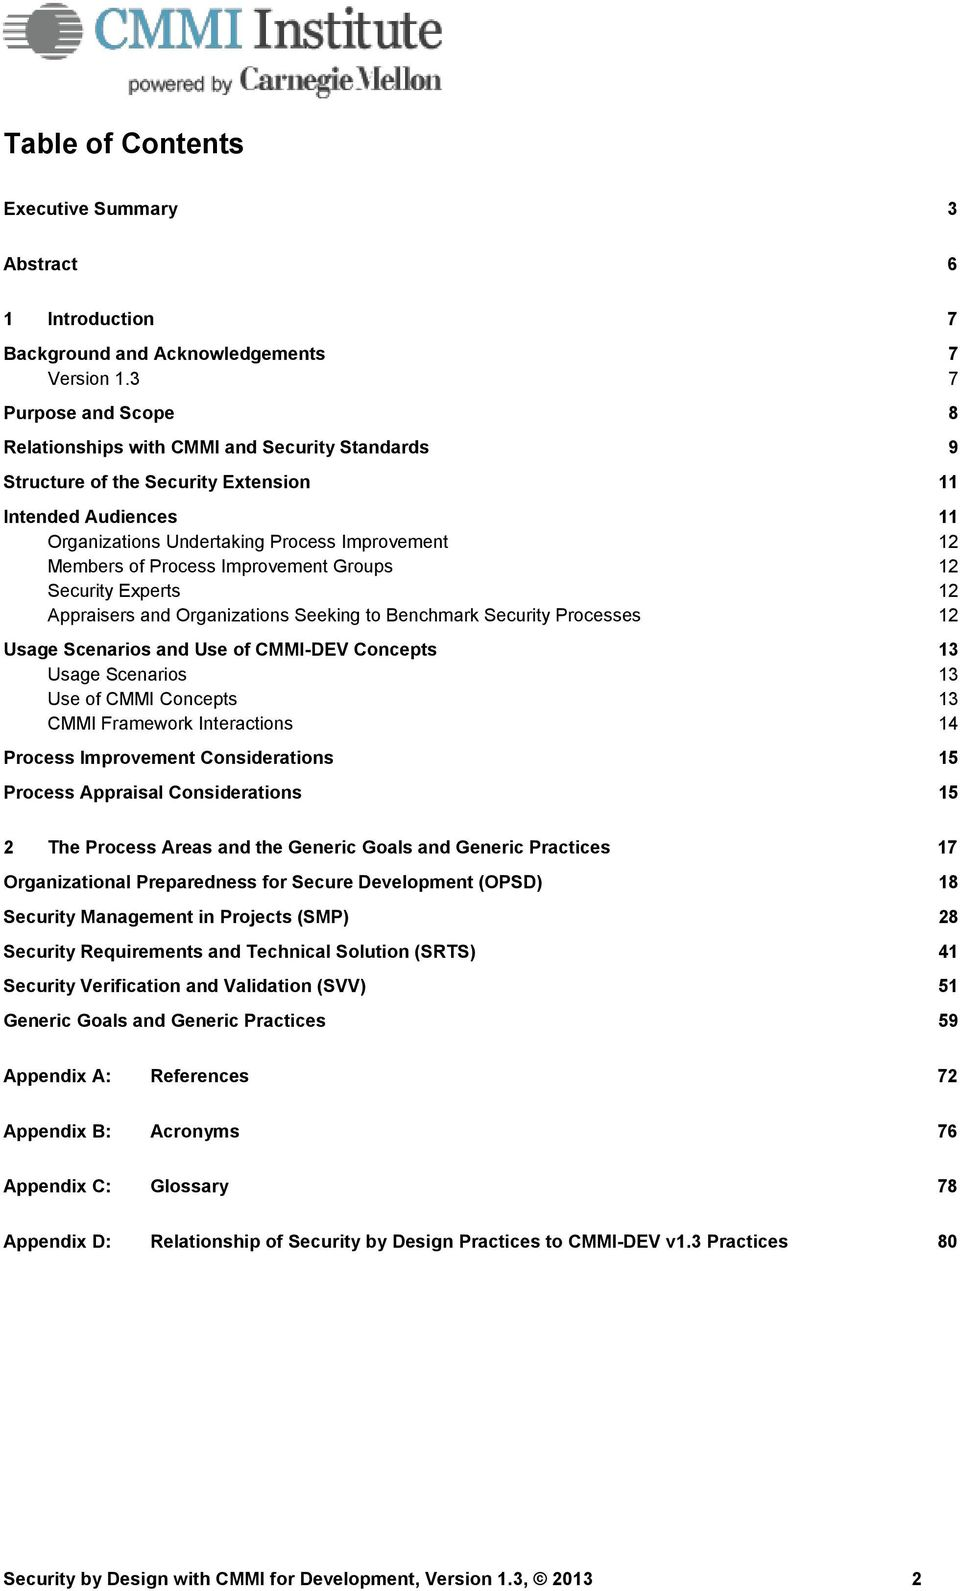 Process Improvement Groups 12 Security Experts 12 Appraisers and Organizations Seeking to Benchmark Security Processes 12 Usage Scenarios and Use of CMMI-DEV Concepts 13 Usage Scenarios 13 Use of